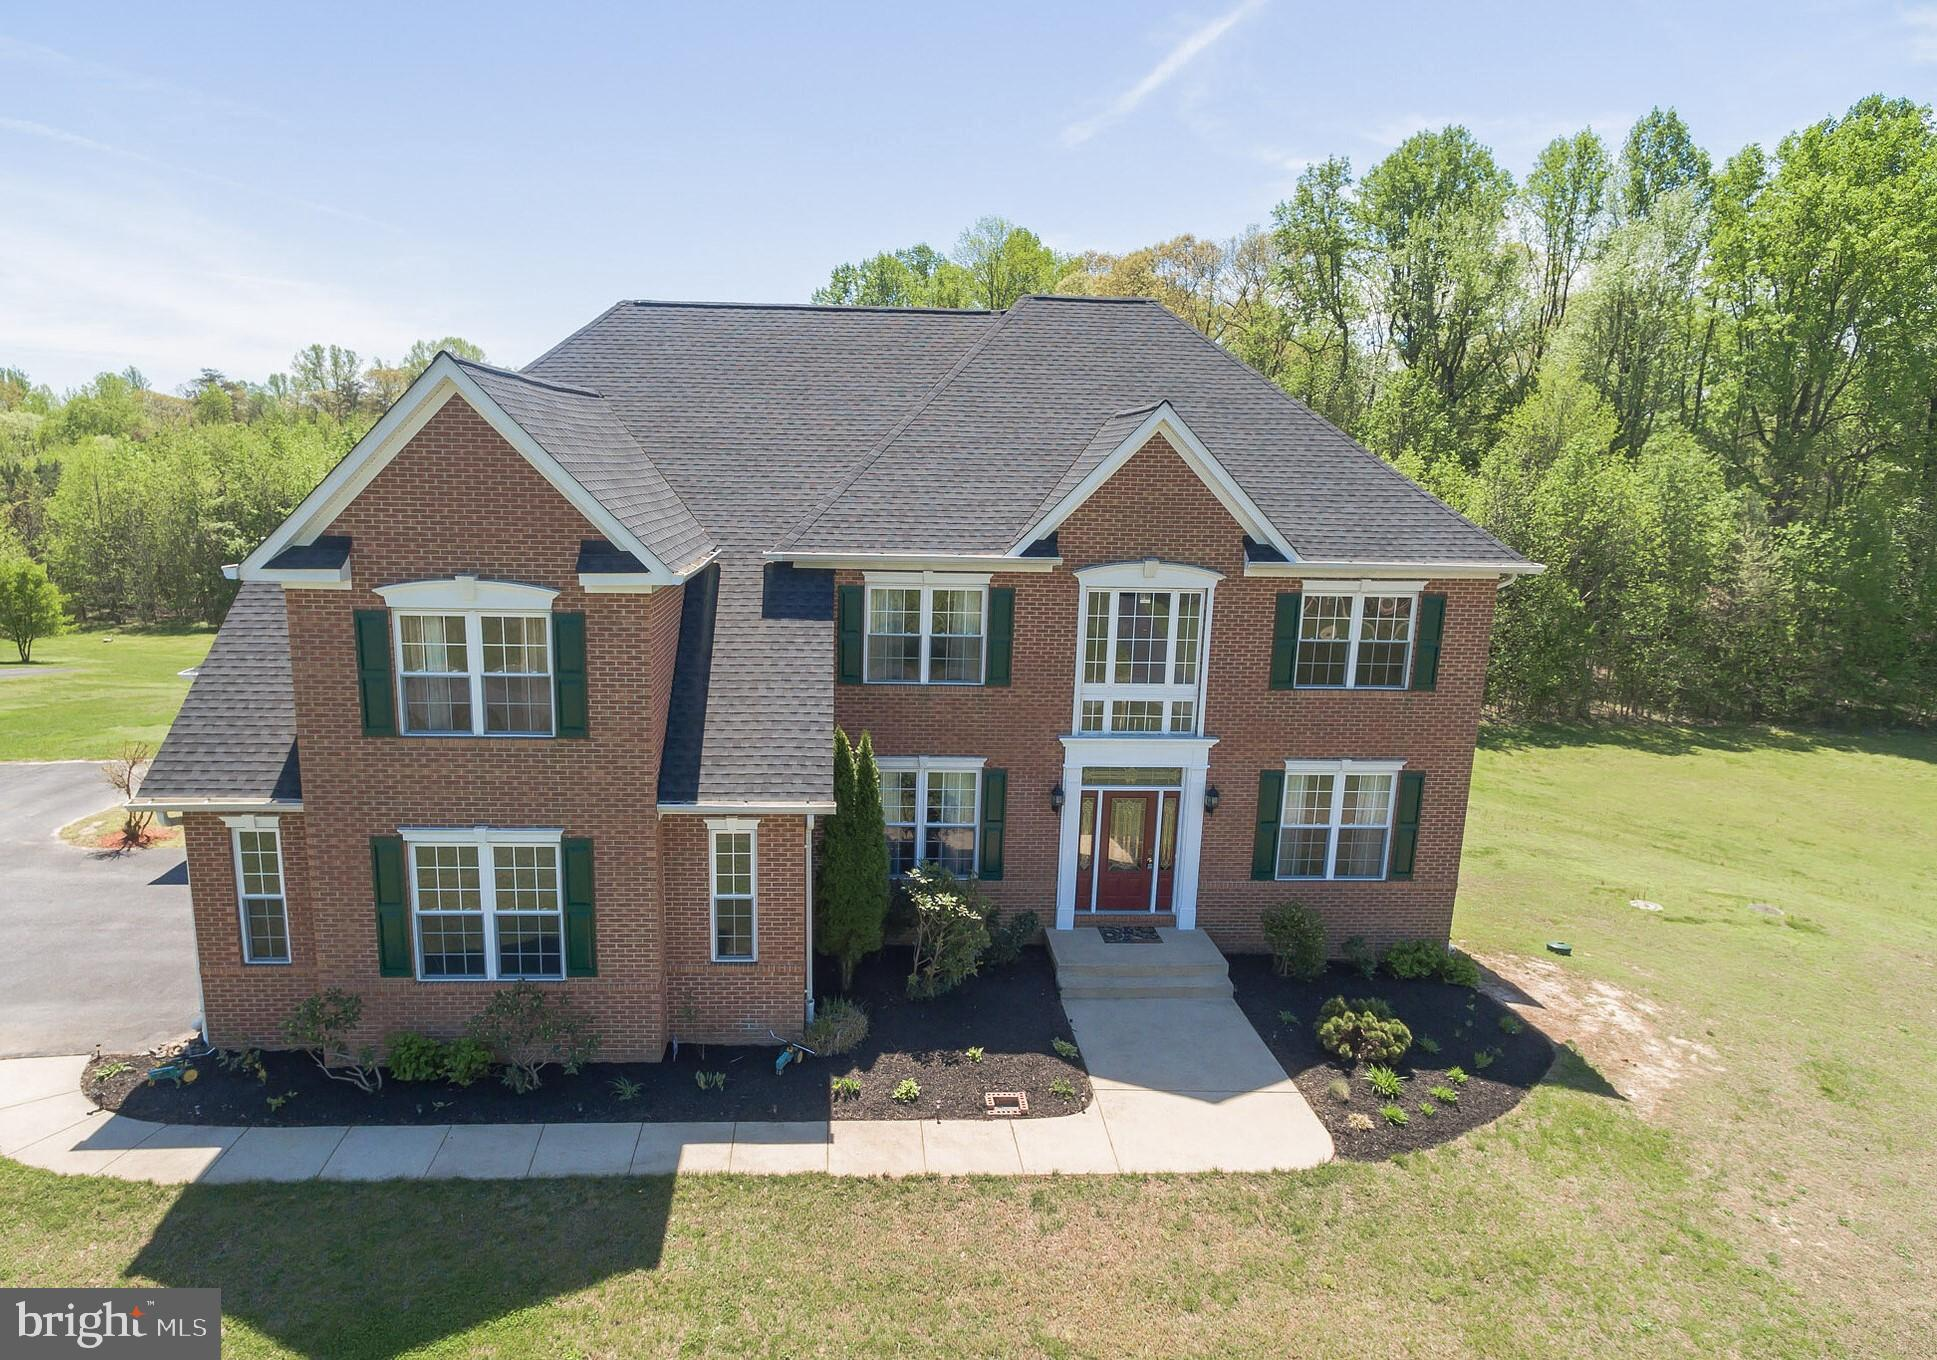 2025 MOUNT PLEASANT WAY, PRINCE FREDERICK, MD 20678